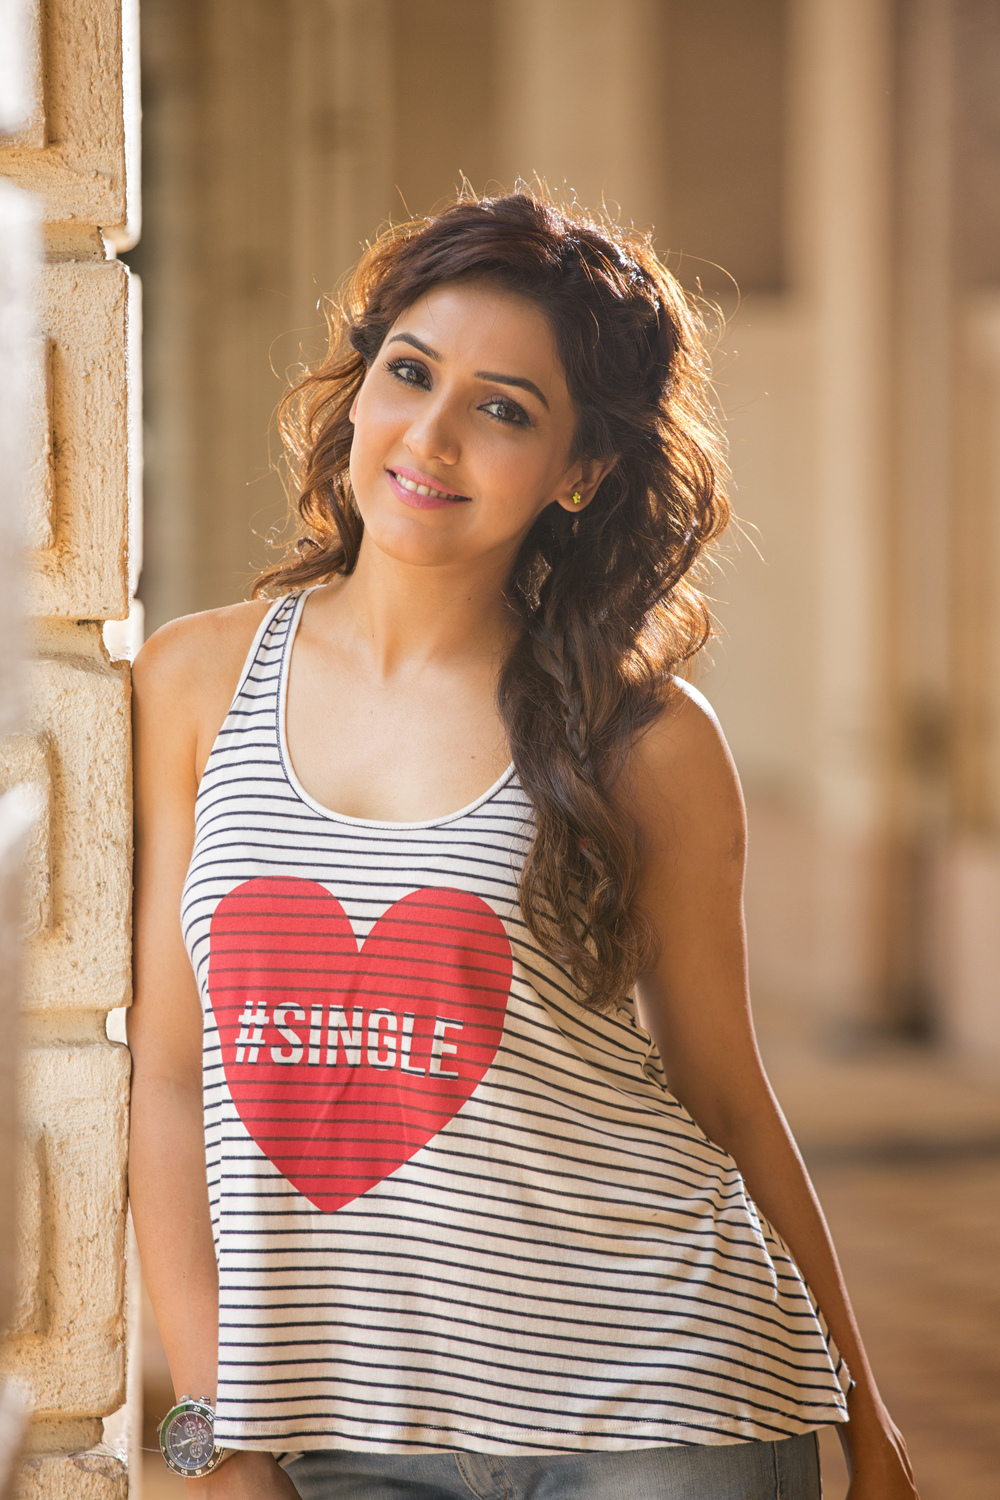 """Neeti Mohan   Neeti Mohan is an Indian popular singer. She was one of the winners of the Channel V show Pop-stars and as such, became a member of the Indian pop group Aasma with the other winners of the show, thus beginning her career in playback singing.  In her career, she sang some of the biggest Chartbusters like """"Ishq Wala Love"""" from the film Student of the Year, """"Tune Maari Entriyaan"""" from Gunday and """"Caller Tune"""" from Humshakls among many. """"Jiya Re"""" from the movie Jab Tak Hai Jaan remains her biggest critical and commercial success till date. She has done several shows in India and Abroad, and is a regular with A.R. Rahman concerts. She also received the R.D. Burman award for the """"New Music Sensation"""" for the songs """"Ishq Wala Love"""" from Student of the Year and """"Jiya Re"""" from Jab Tak Hai Jaan.  She was also nominated as the Best Female Playback Singer in Filmfare Awards, 2013 for the song """"Jiya Re"""" from the film Jab Tak Hai Jaan.  Some of her other hits include """"Saadi Galli Aaja"""" from Nautanki Saala, """"Kashmir Main Tu Kanyakumari"""" from Chennai Express and """"Tune Maari Entriyaan"""" from the movie Gunday.     DOWNLOAD PROFILE"""